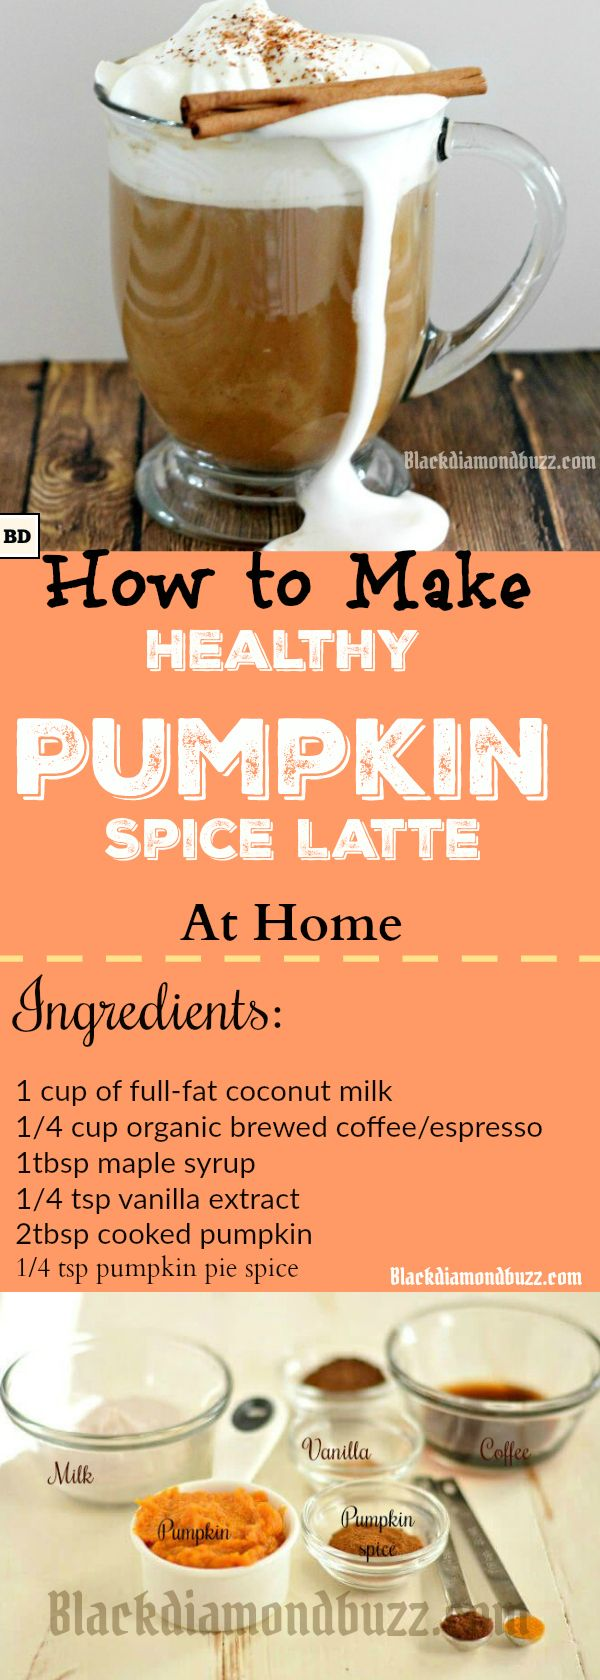 How to Make  Healthy Pumpkin Spice Latte at Home  Do you want to make your fall drink easy healthy pumpkin spice latte recipe better than Starbucks? Then here are healthy pumpkin spice latte creamer recipe with coconut milk low carbs and sugar and dairy free.   Ingredients:     1 cup of full-fat coconut milk  1/4 cup organic brewed coffee/espresso  1tbsp maple syrup 1/4 tsp vanilla extract  2tbsp cooked pumpkin  1/4 tsp pumpkin pie spice